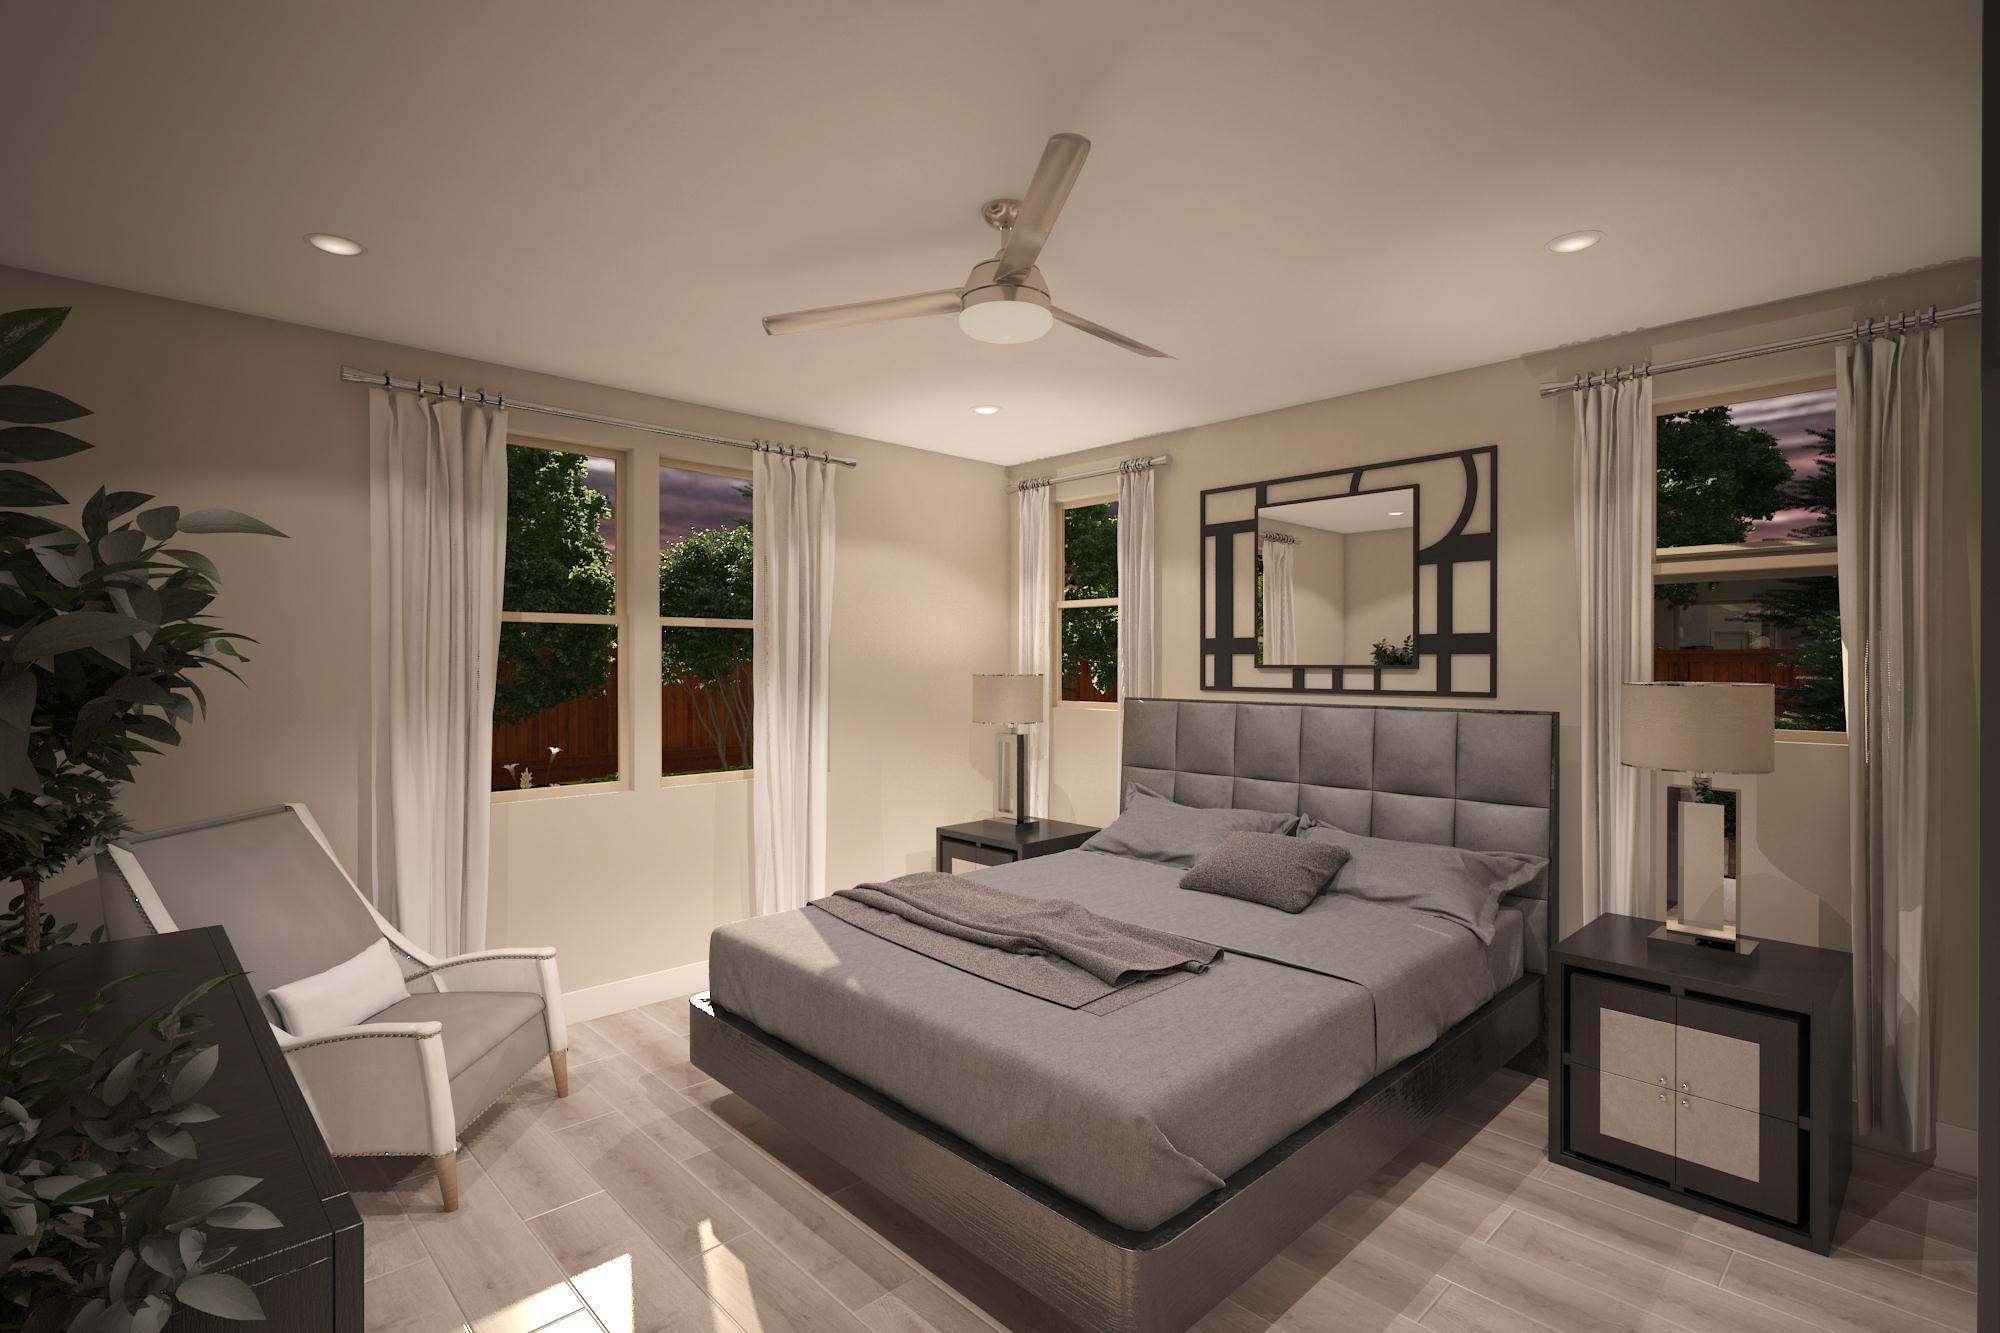 Bedroom featured in the Plan 2- 1574 By Jenuane Communities in Reno, NV